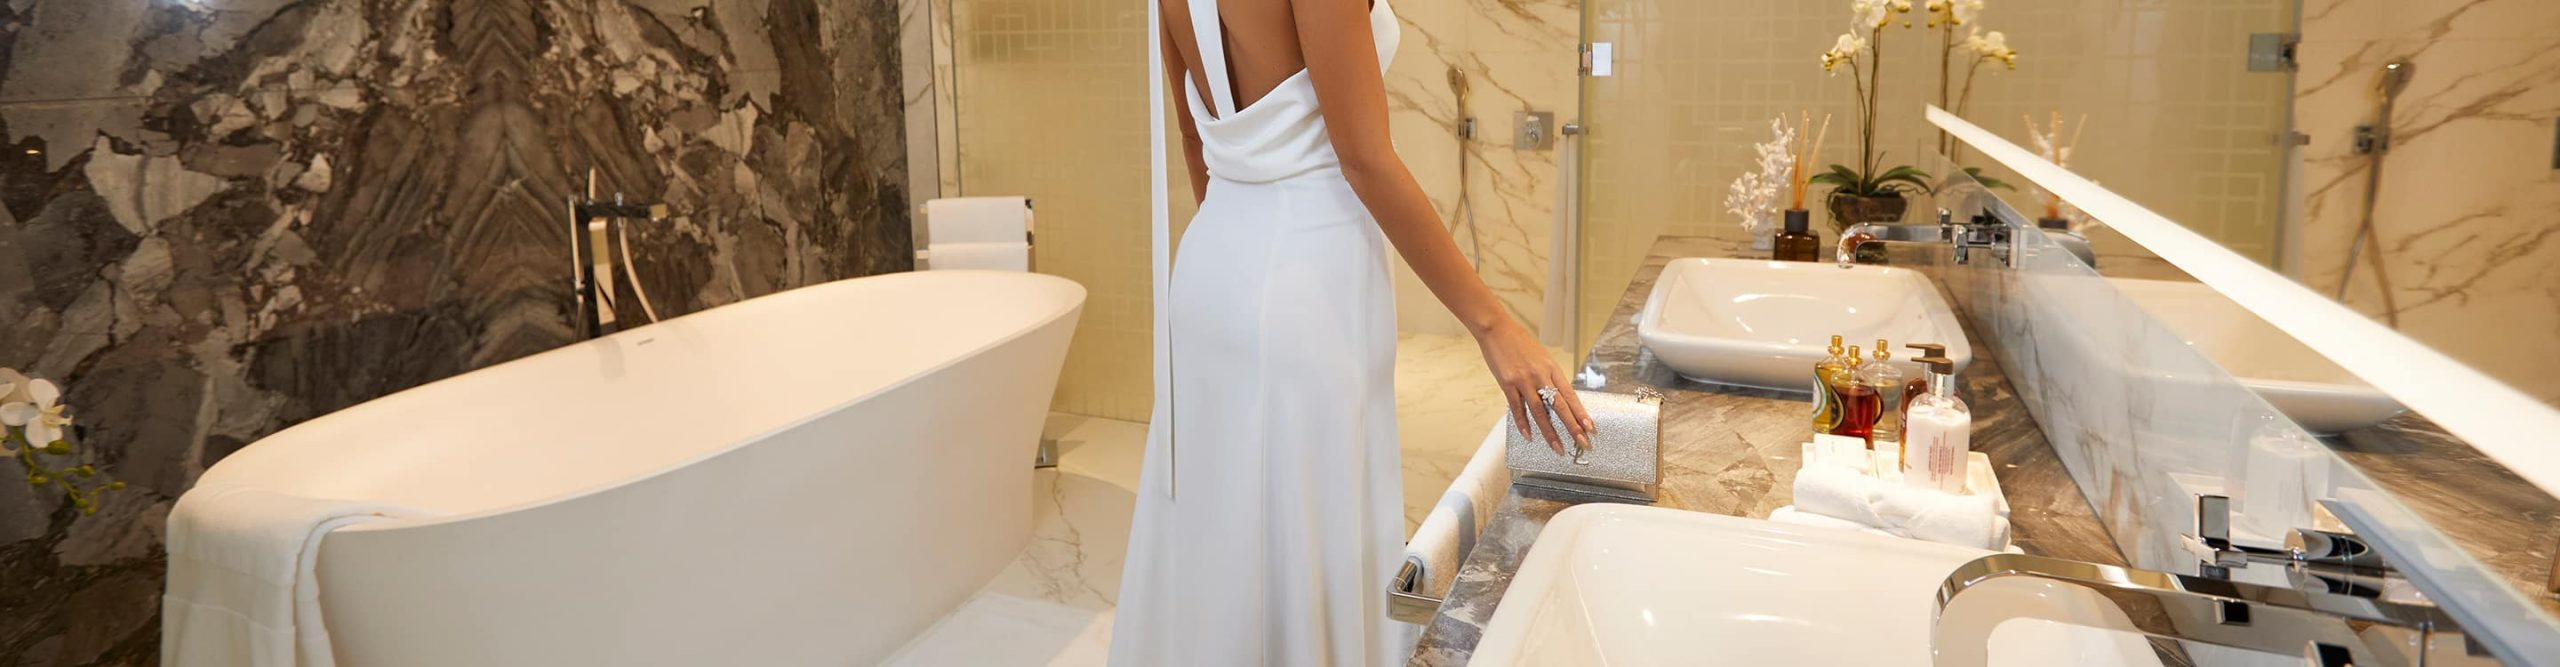 A young woman stands in her luxury bathroom